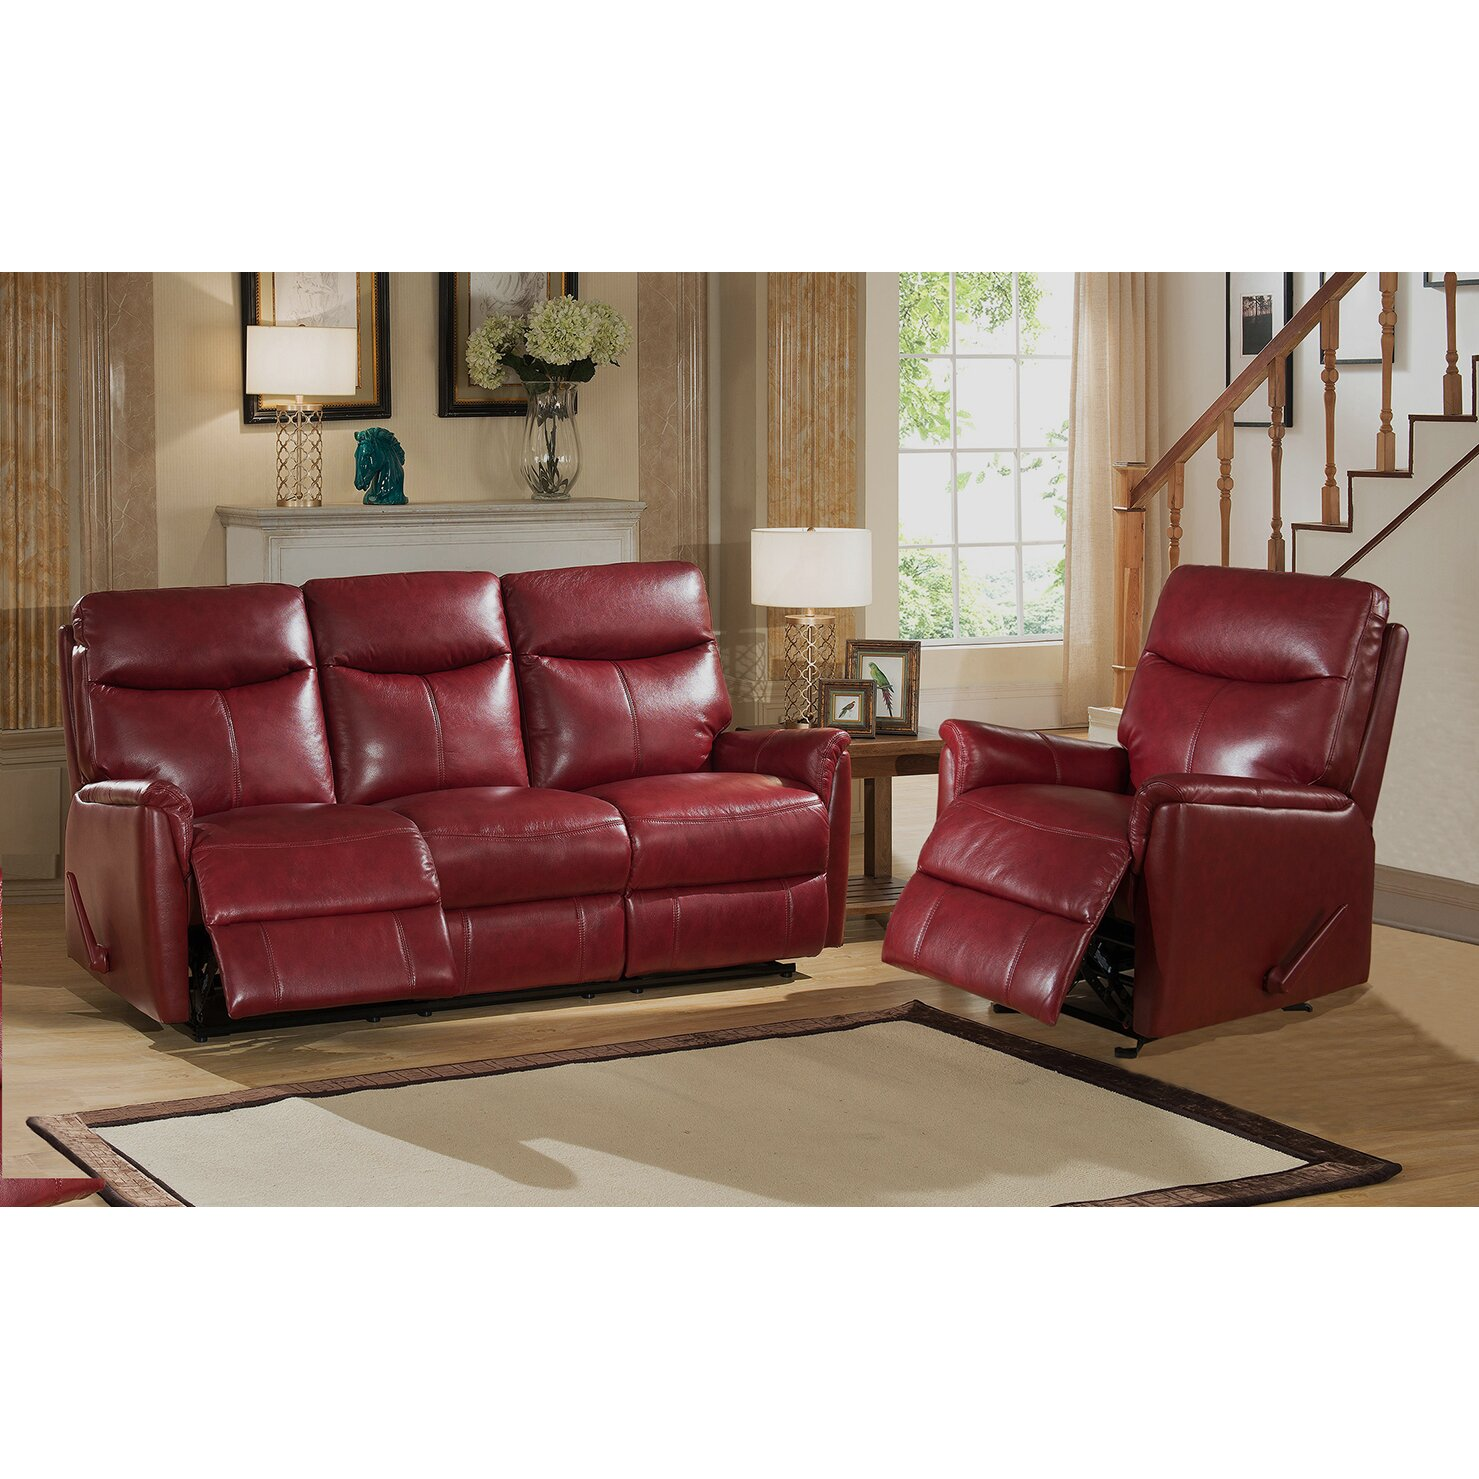 Amax napa 2 piece top grain leather lay flat reclining living room set wayfair 2 piece leather living room set